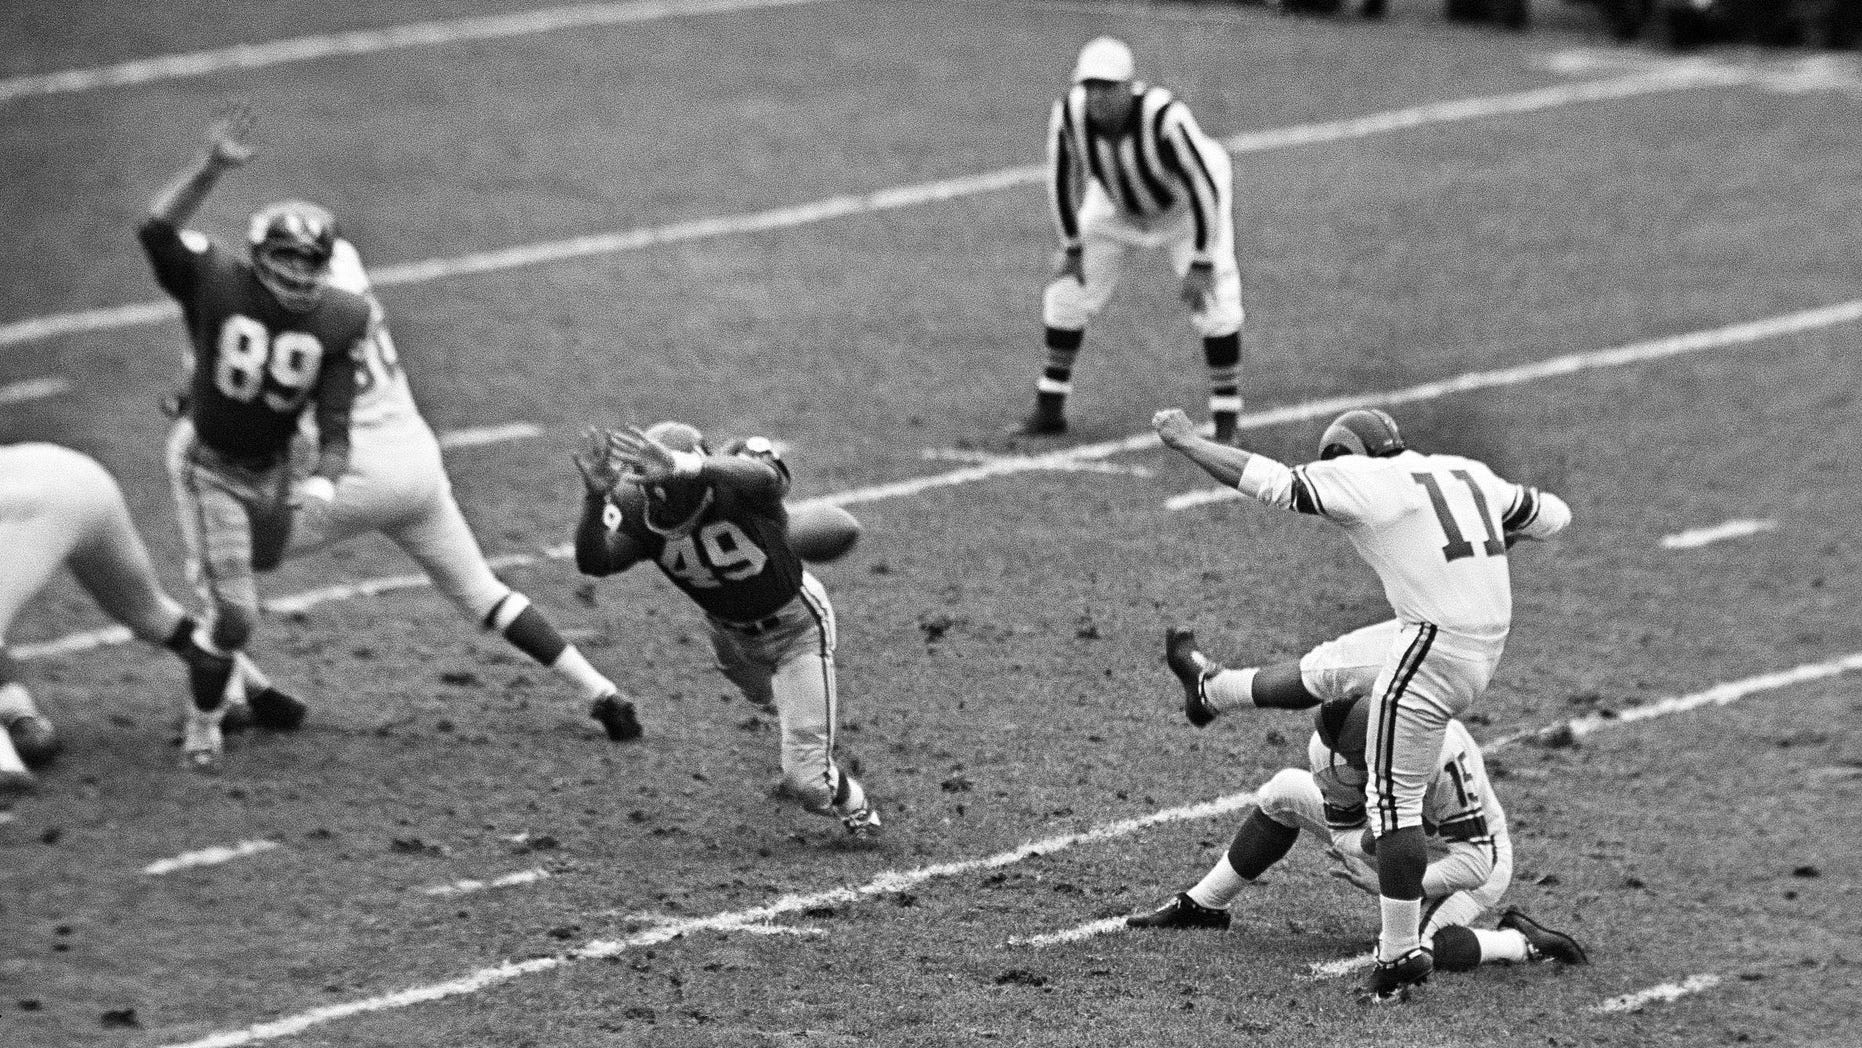 In this Oct. 22, 1961, file photo, New York Giants halfback Erich Barnes (49) blocks field goal-attempt by Los Angeles Rams' Danny Villanueva (11) in the first period of NFL game in New York's Yankee Stadium. Villanueva, who was one of the NFL's first Latino kickers and a pioneer of Spanish-language television, has died. He was 77. (AP Photo, File)